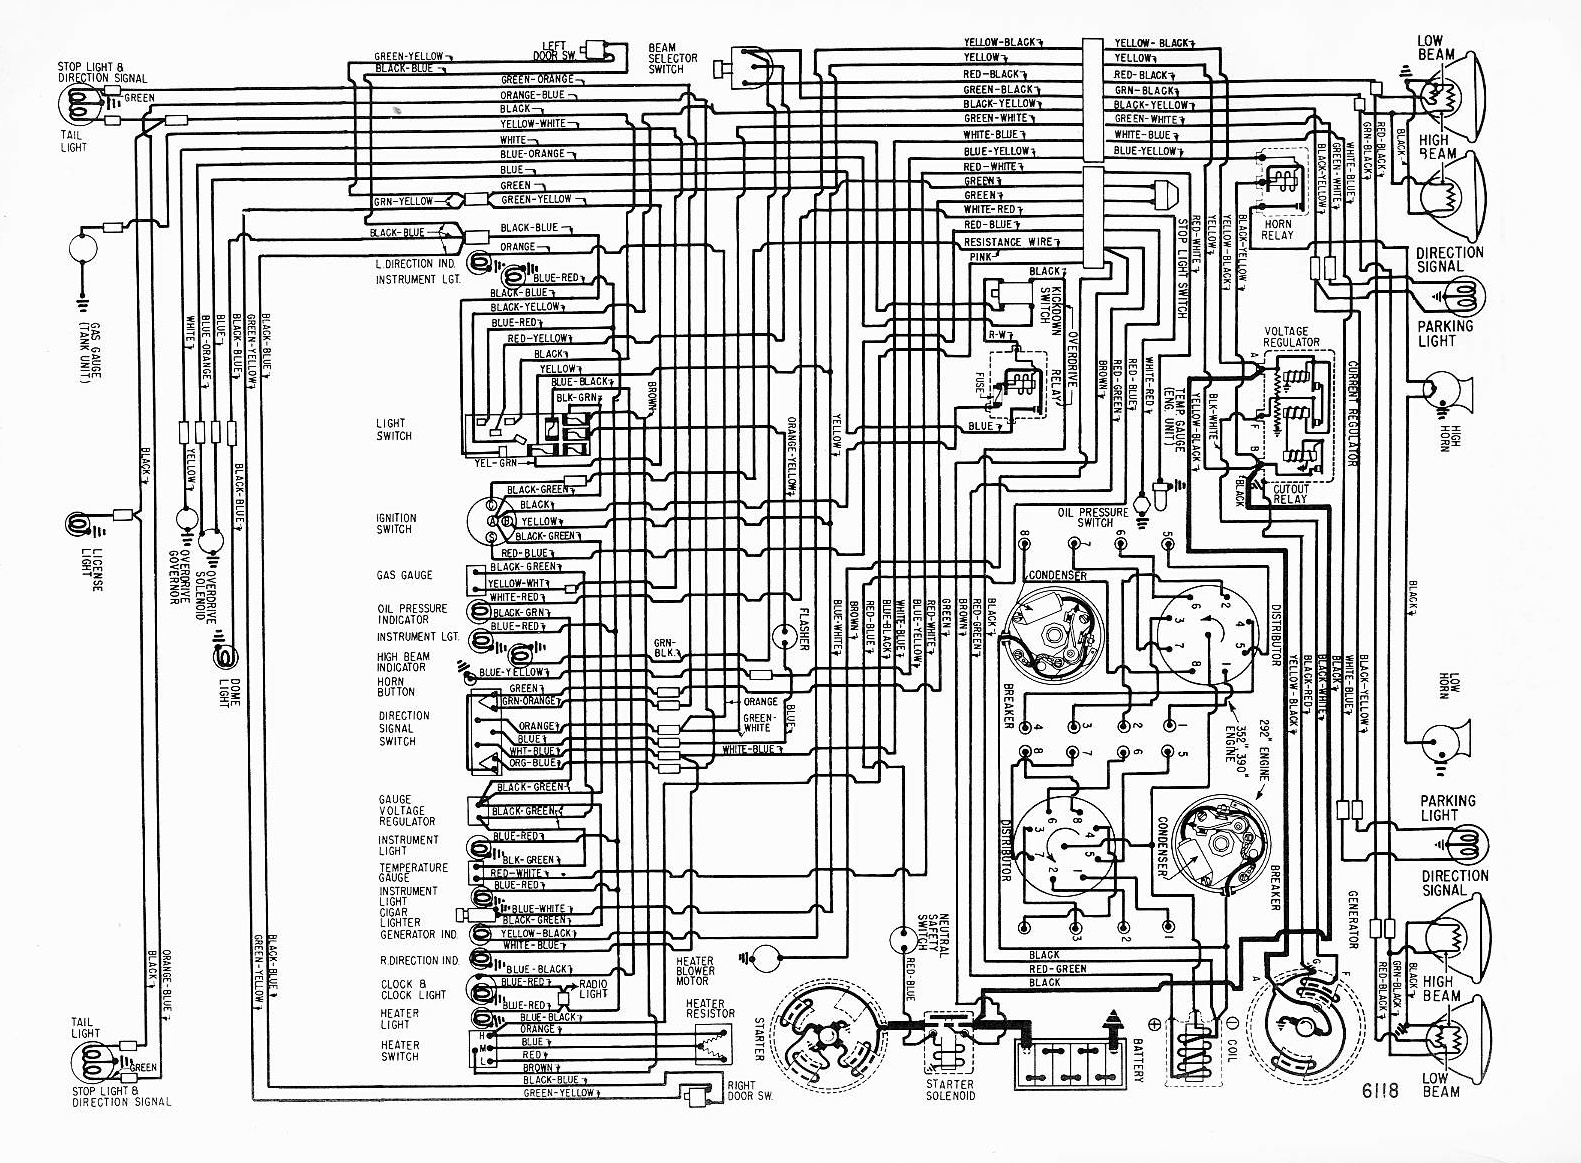 1974 corvette under hood wiring harness diagram wiring diagramcorvette parts \u0026 corvette accessories keen parts restoration 1991 corvette wiring harness 1974 corvette under hood wiring harness diagram